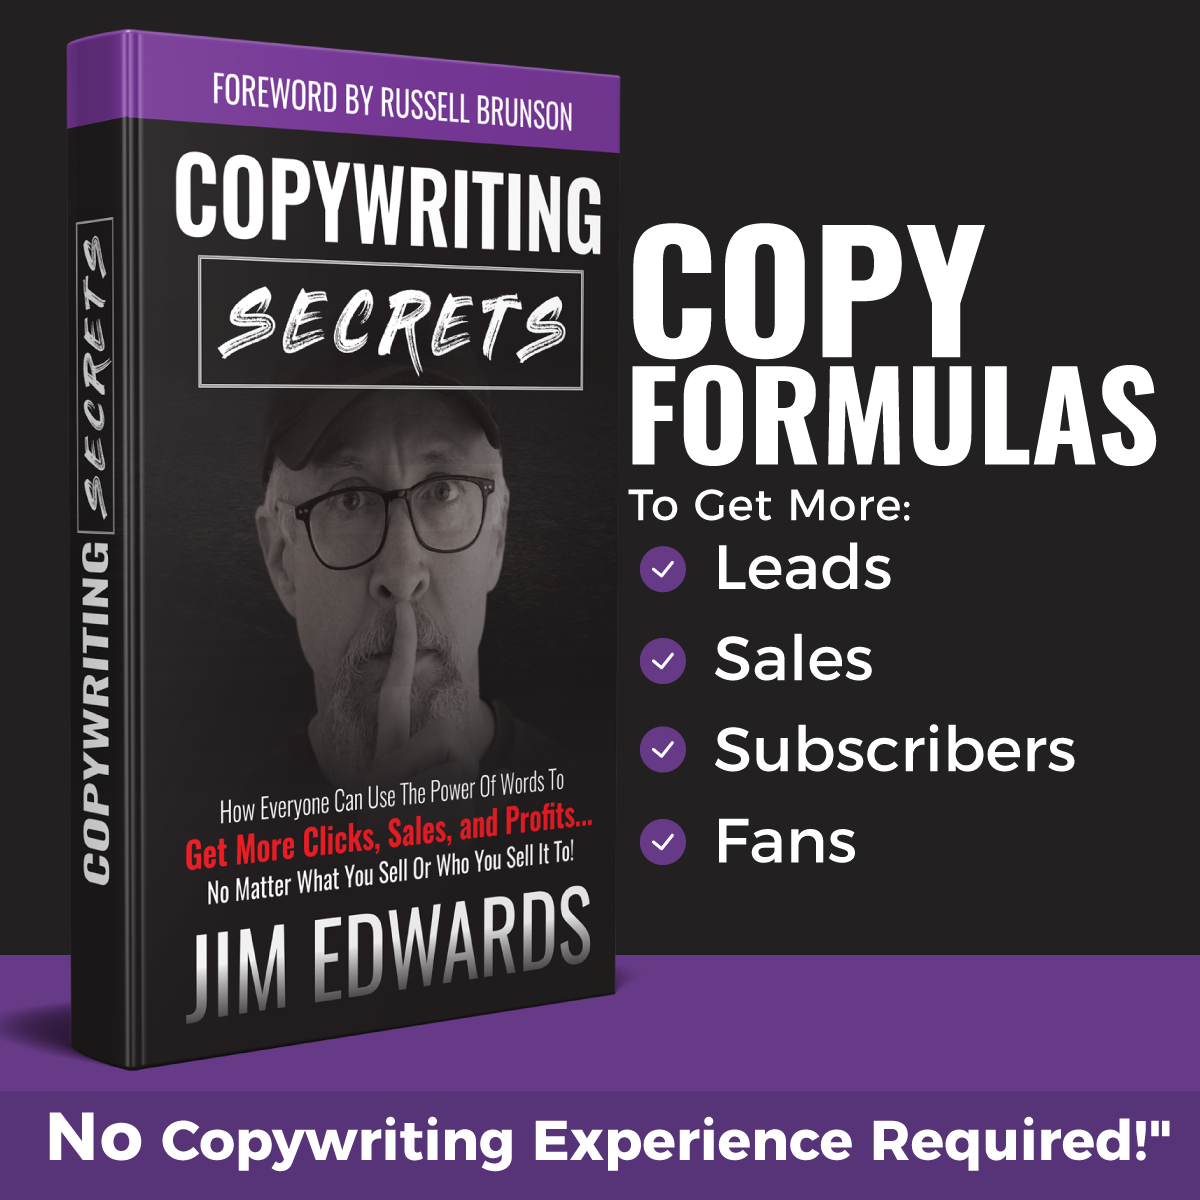 Copywriting Work From Home Jobs